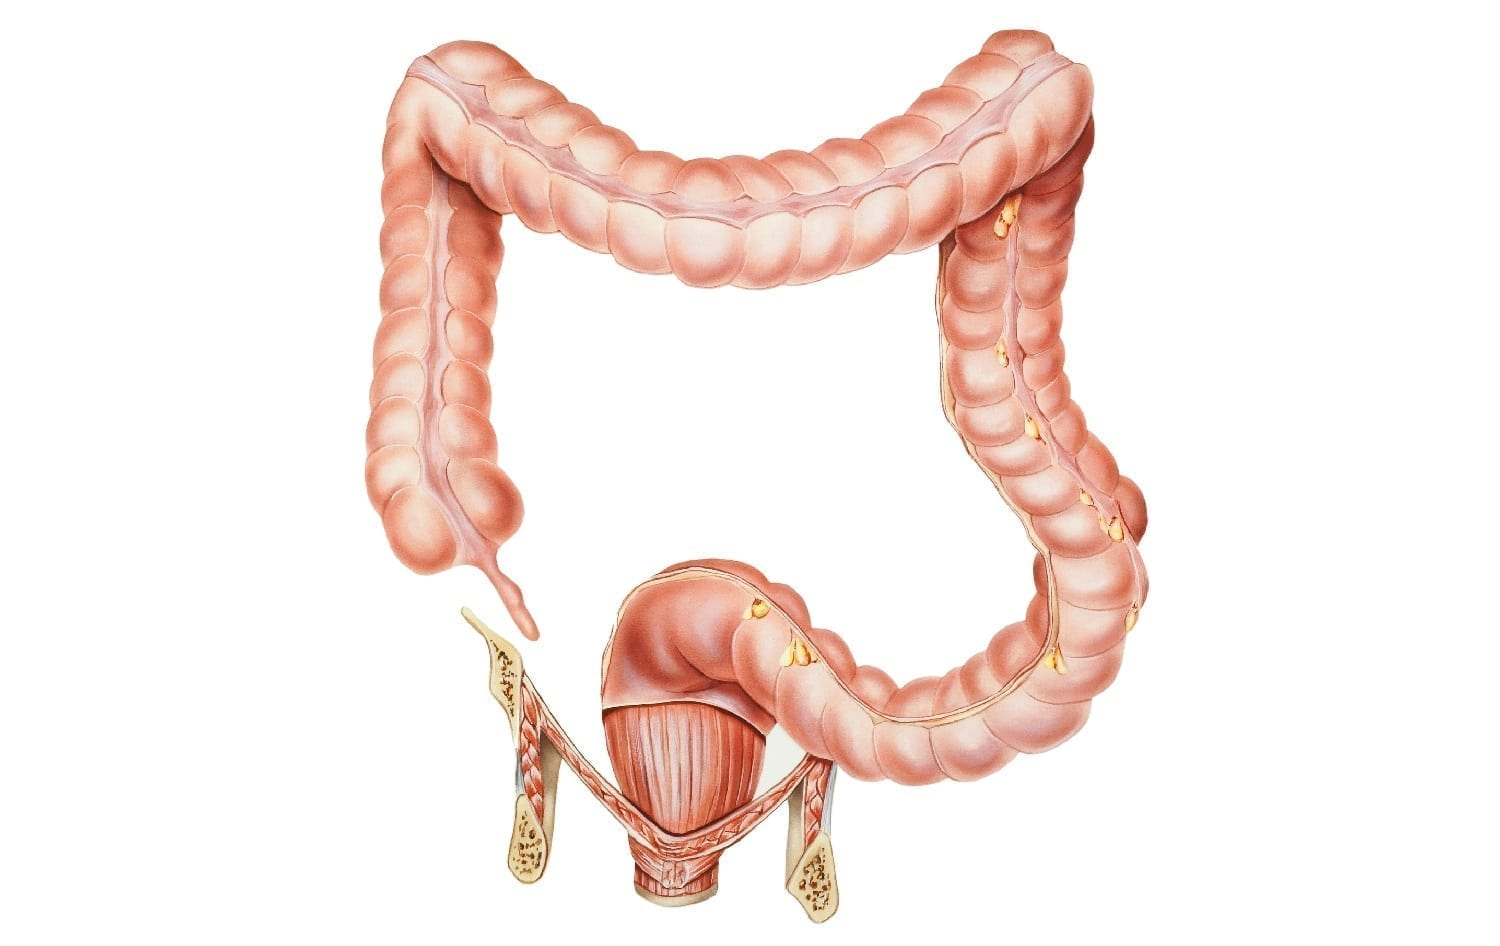 Appendix and colon illustration: ID 55917625 © Medicalartinc | Dreamstime.com